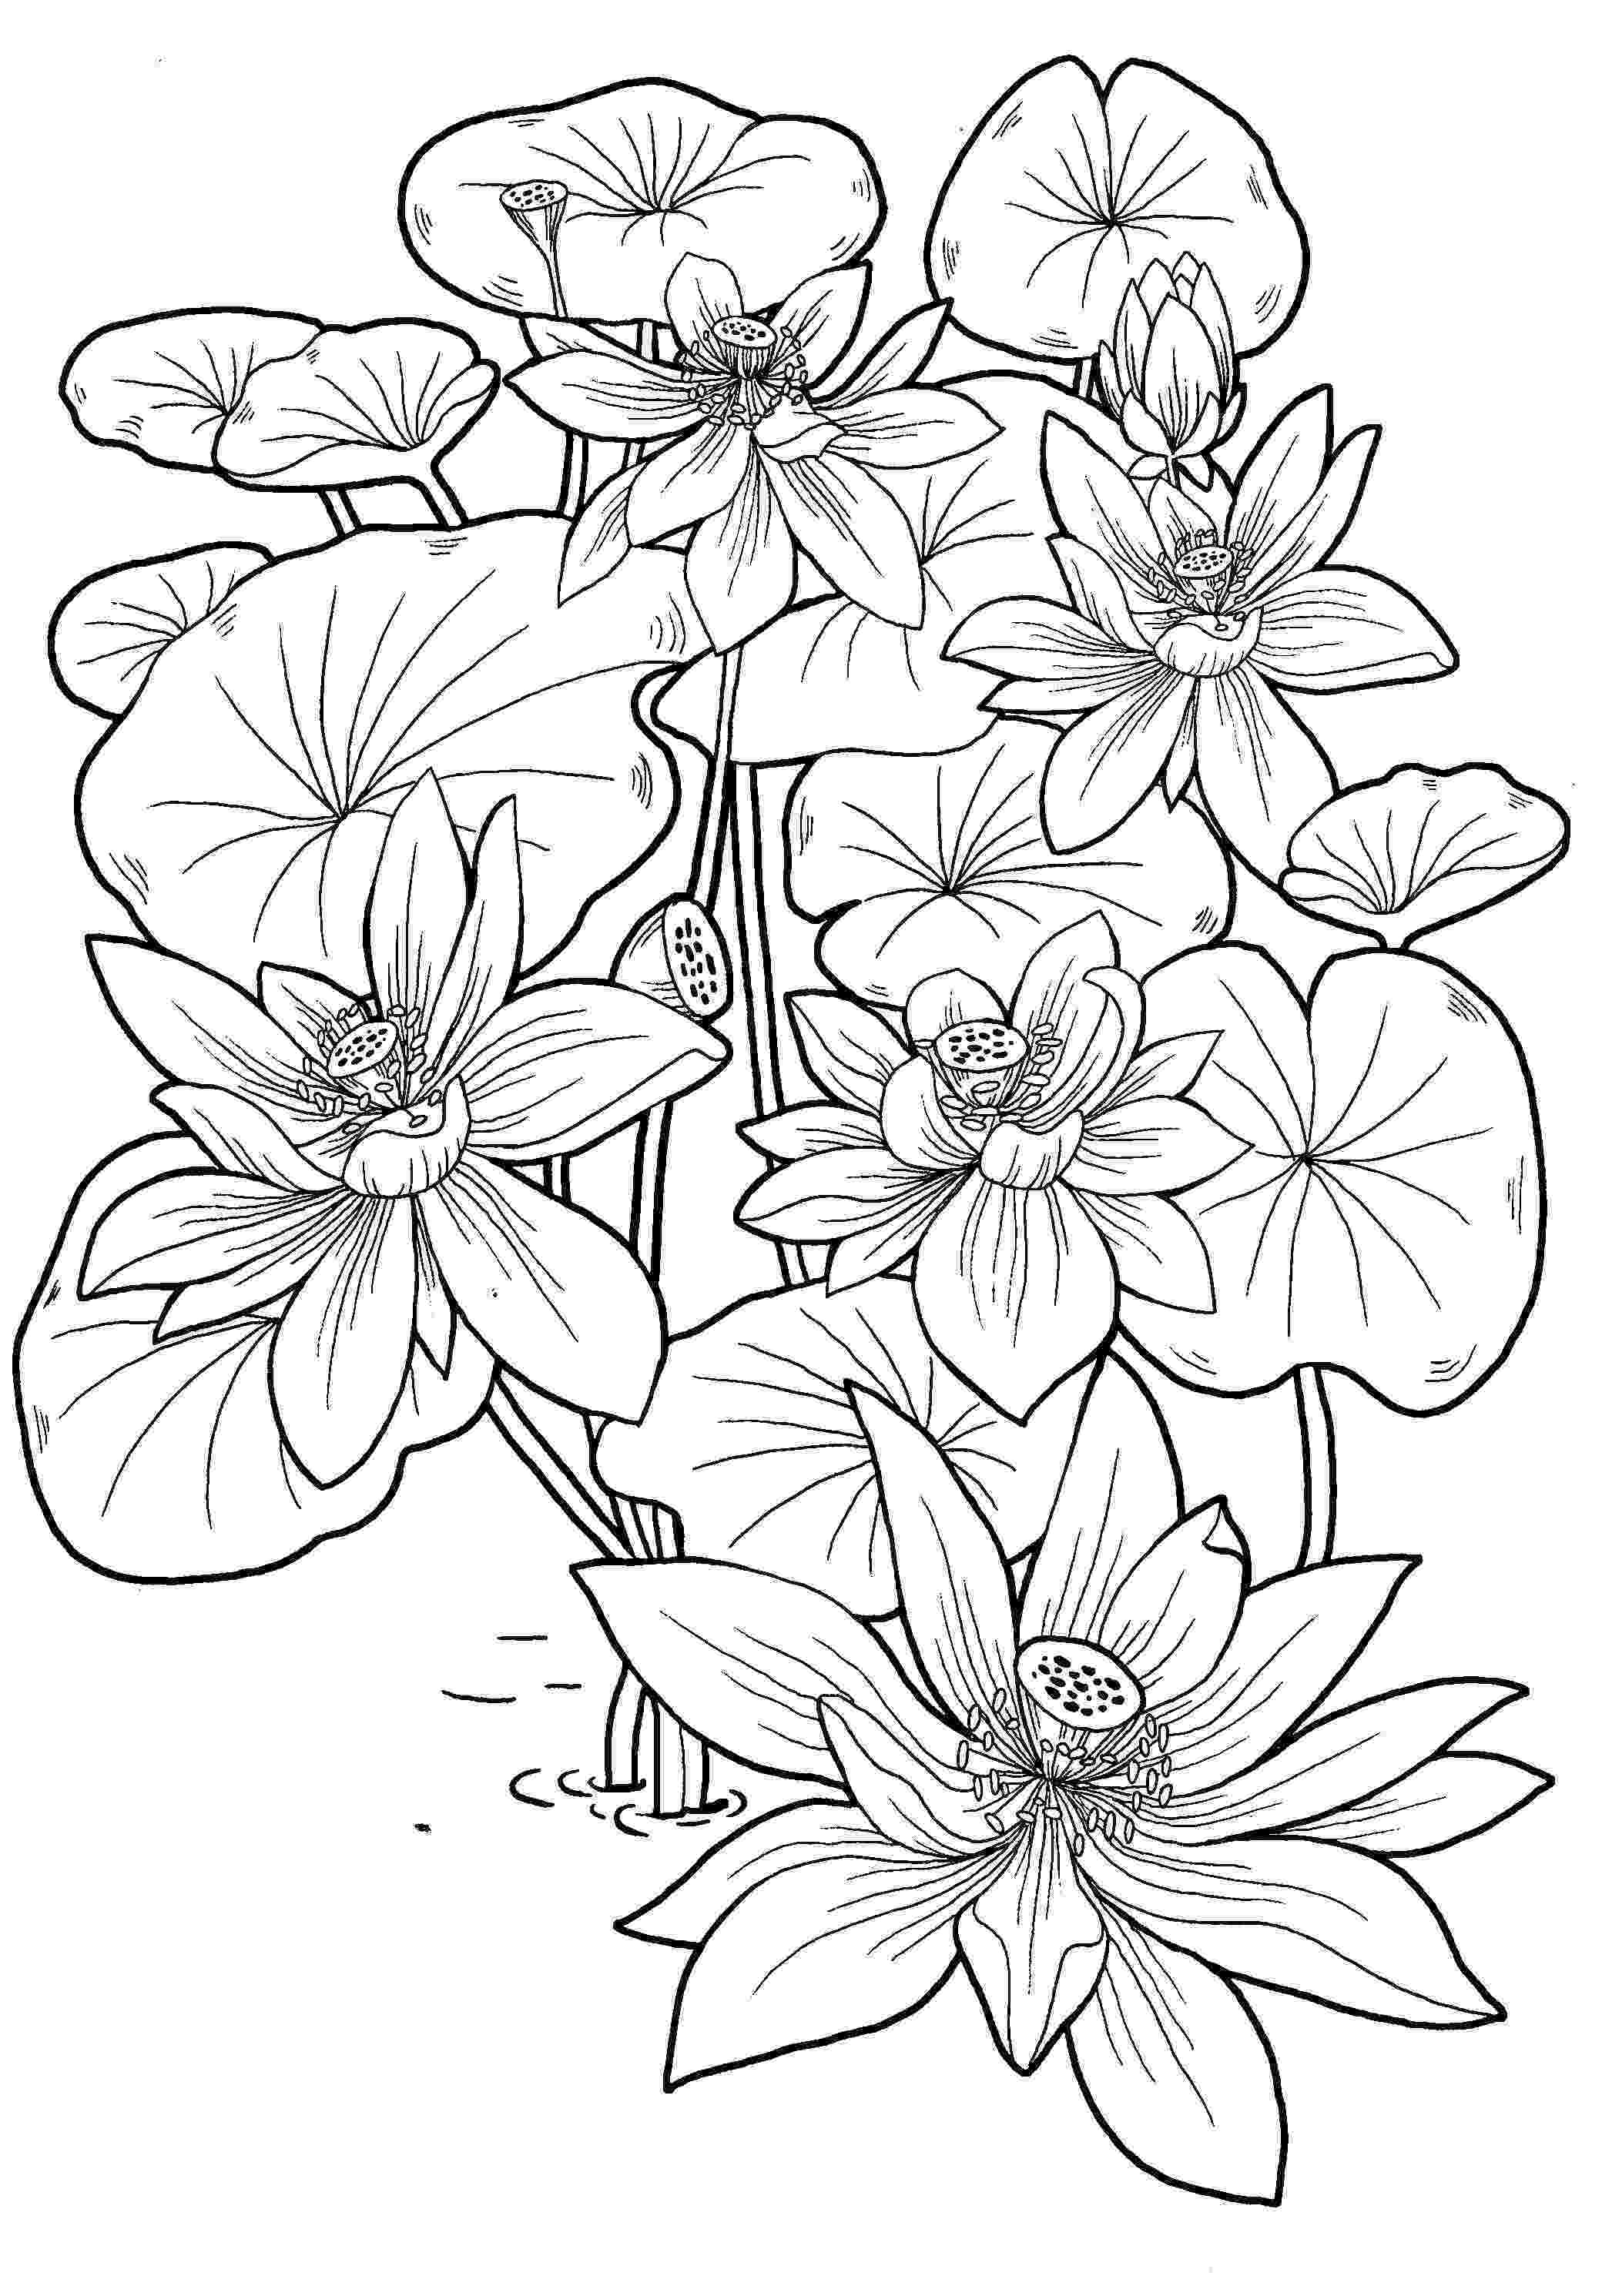 cool coloring pages for 9 year olds all kids appreciate coloring and free girl coloring pages year pages coloring cool 9 for olds